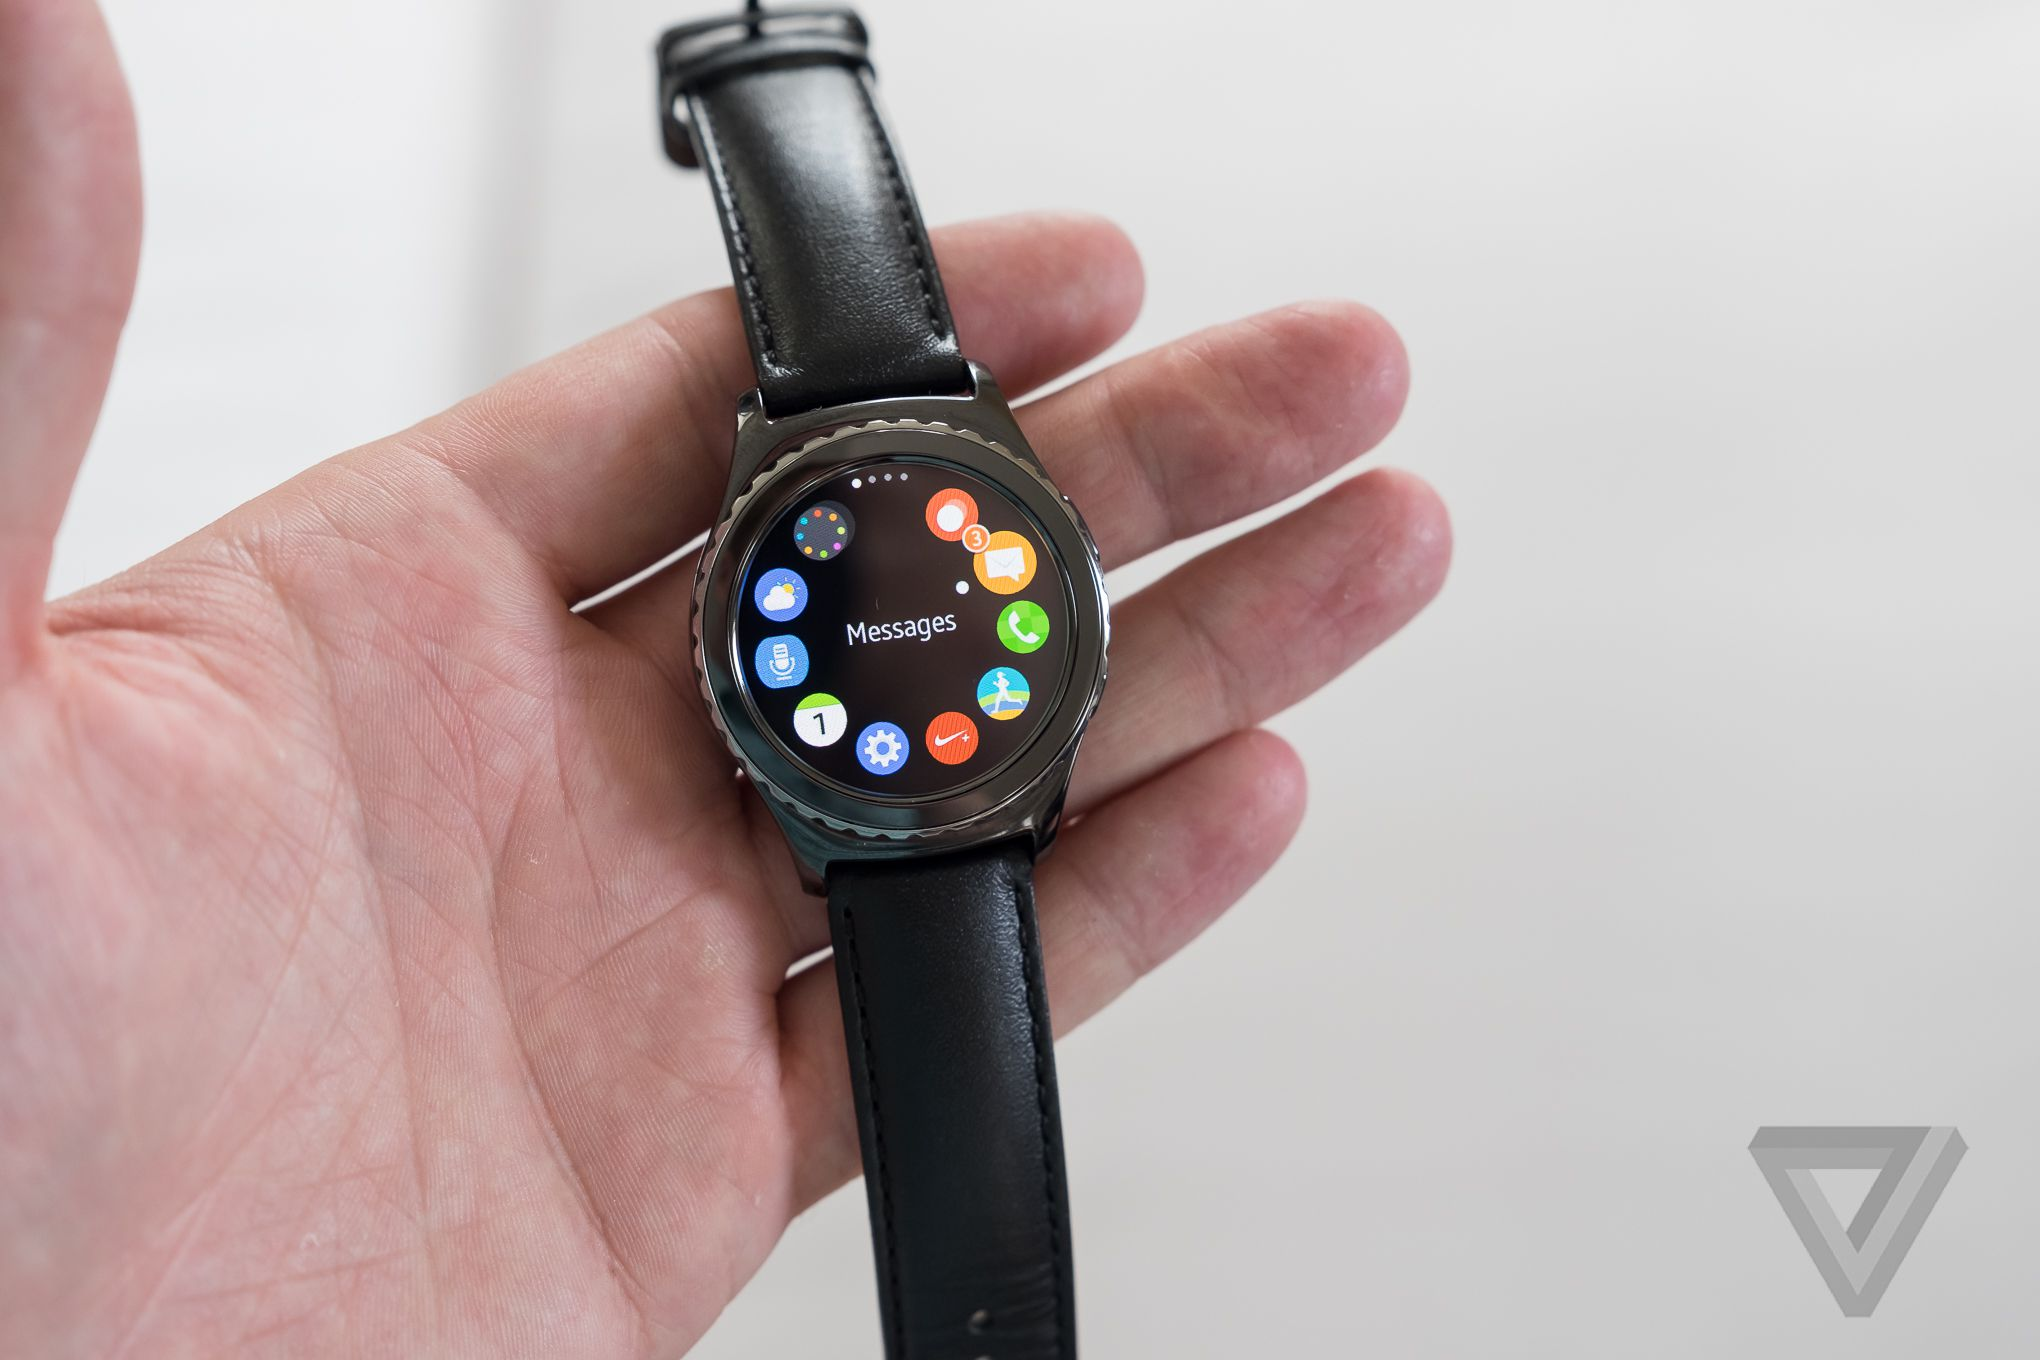 Samsung S Gear S2 Is Its Best Looking Smartwatch Yet The